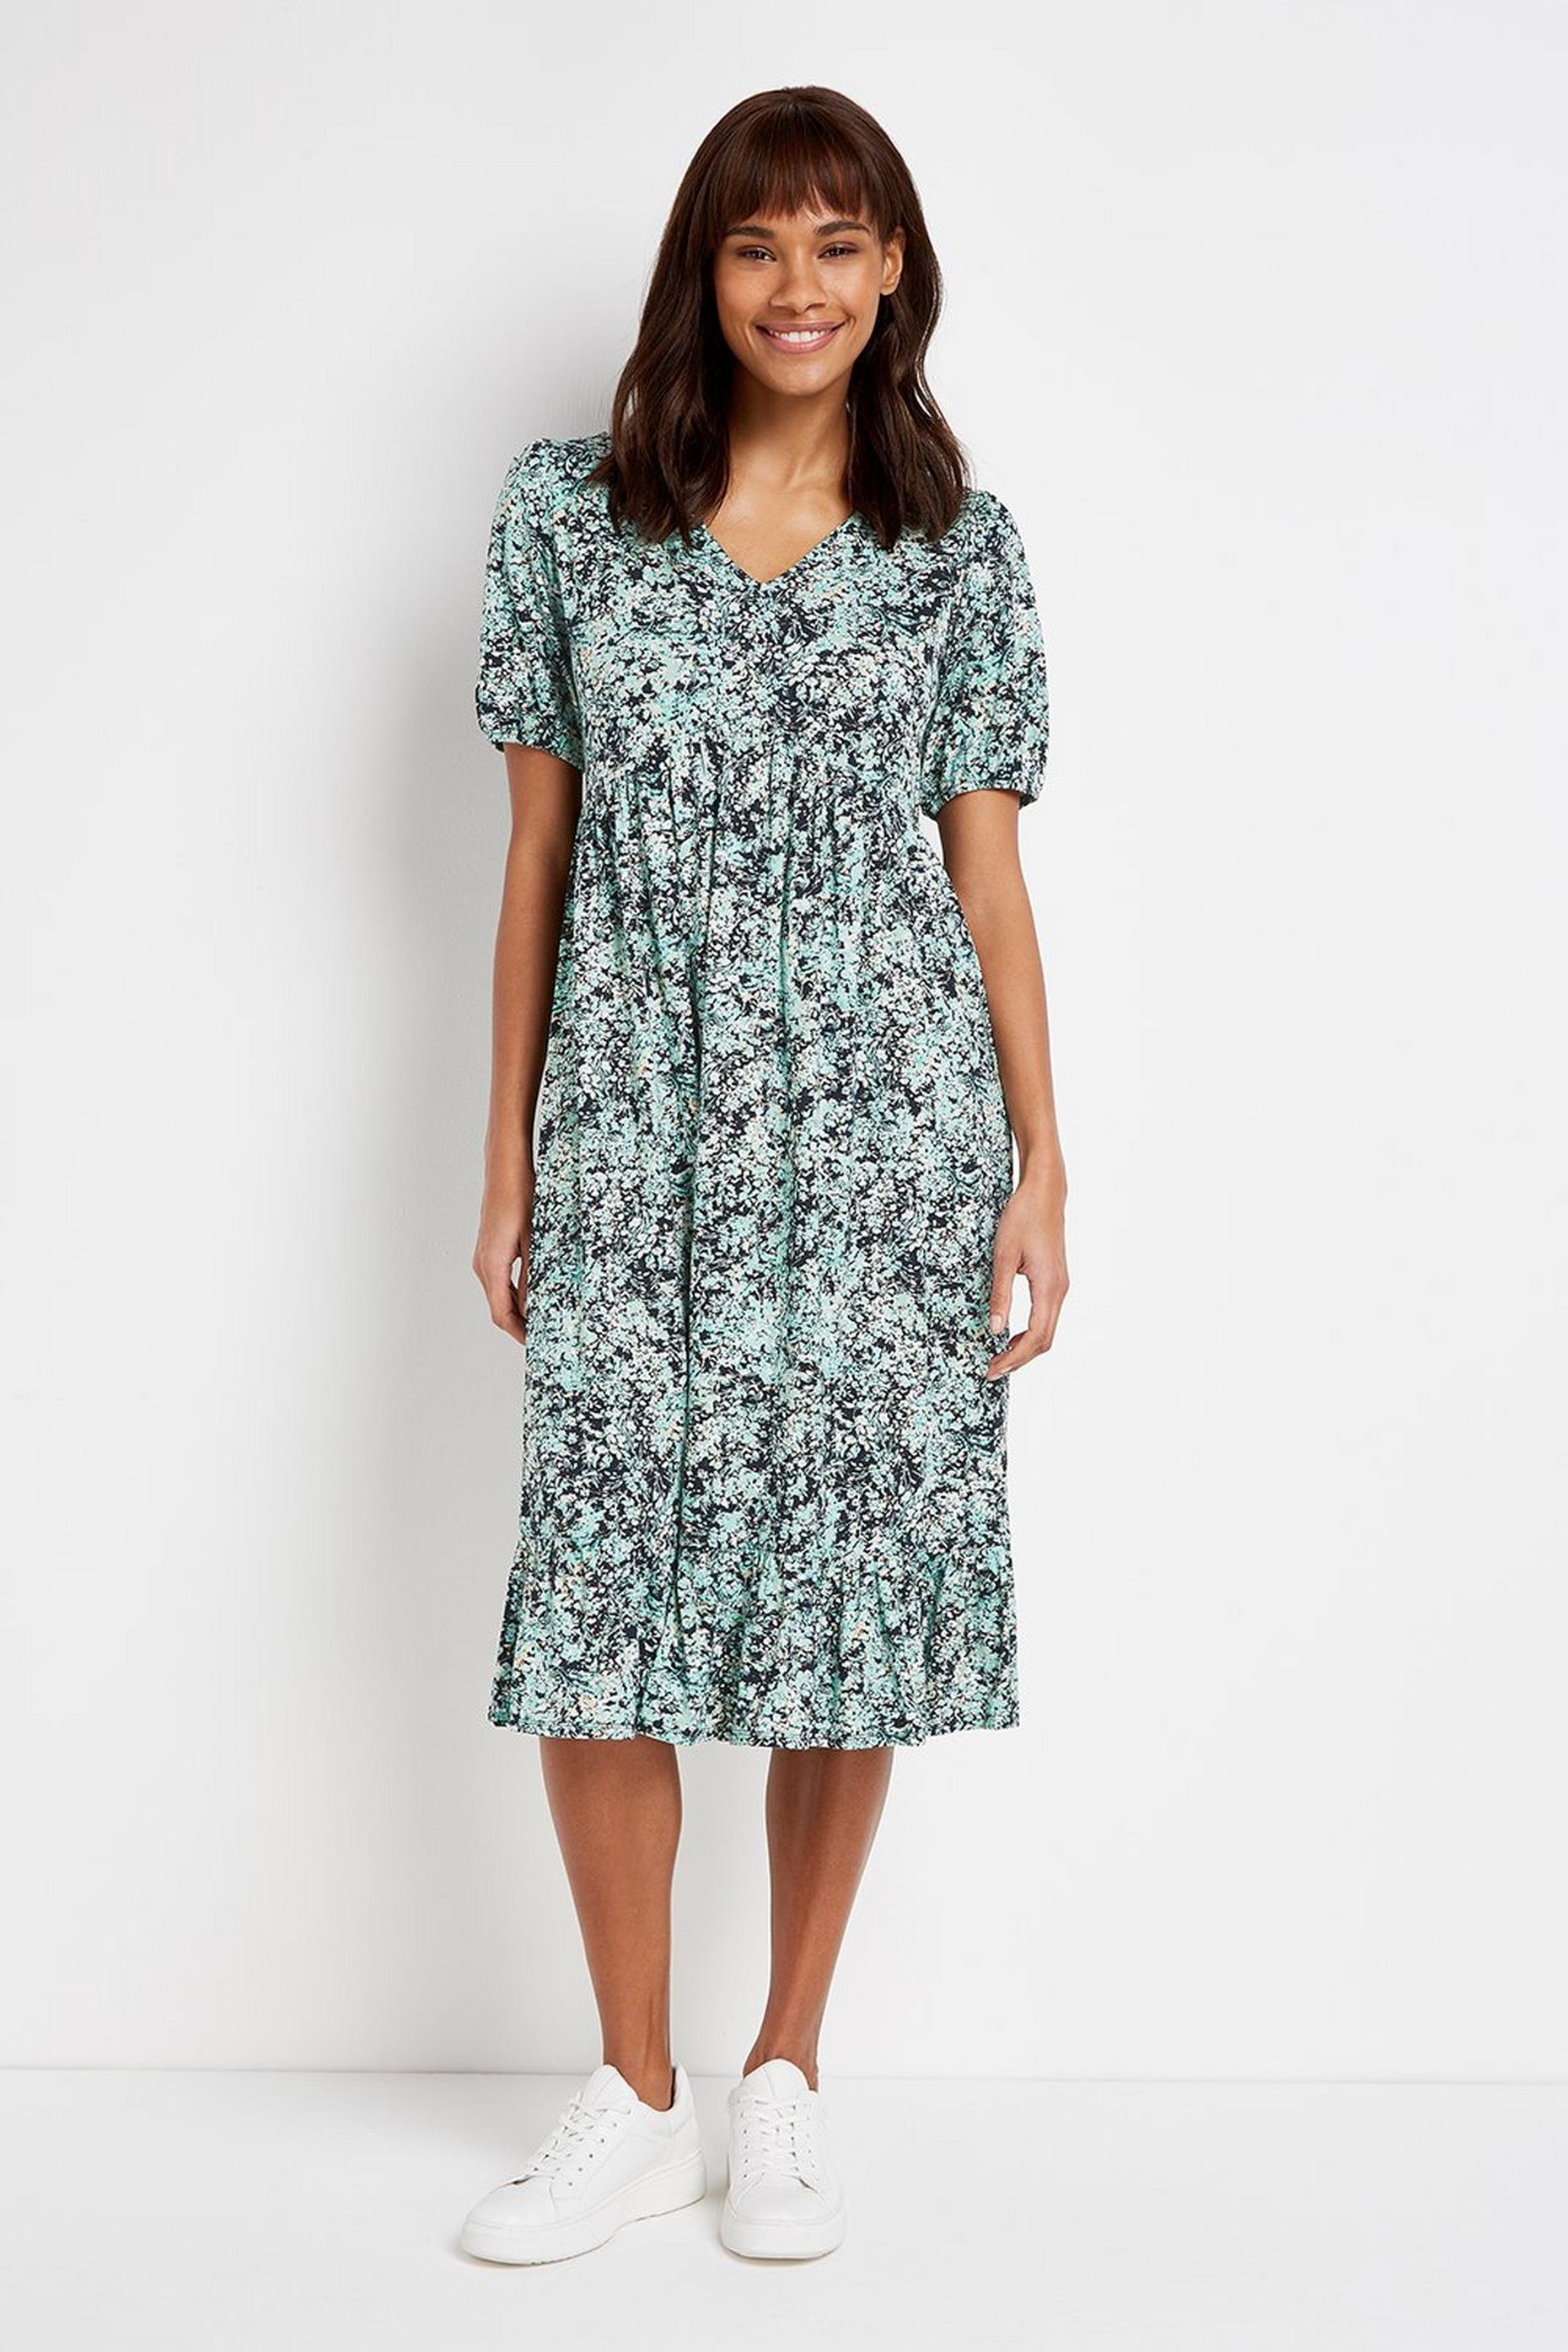 PETITE Blue Floral Print Midi Dress